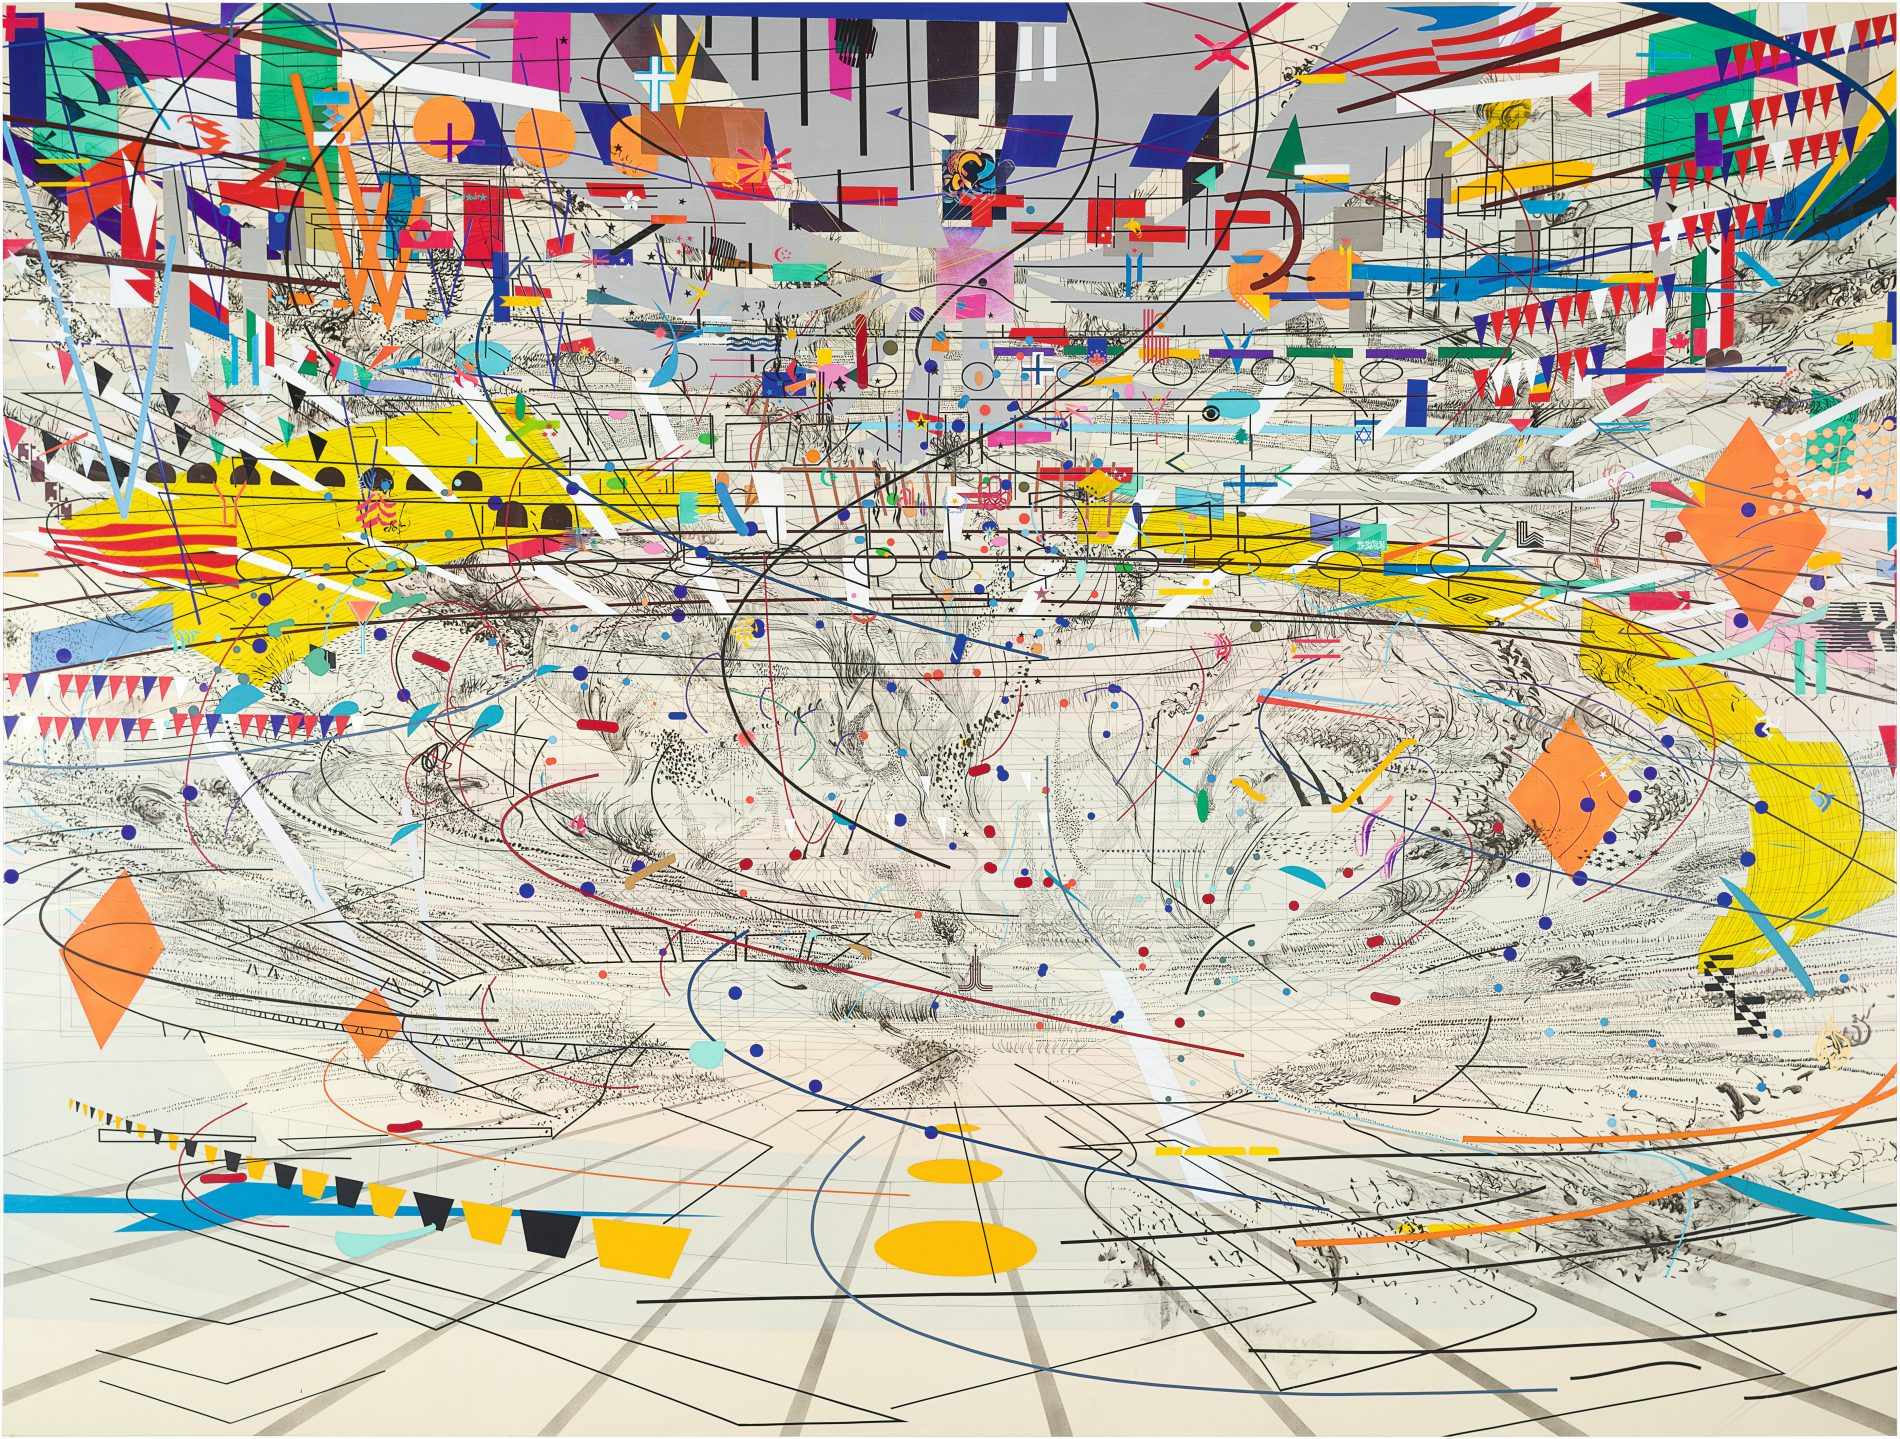 Julie Mehretu, Stadia II , 2004, ink and acrylic on canvas, 108 × 144 inches, Carnegie Museum of Art, Pittsburgh, gift of Jeanne Greenberg Rohatyn and Nicola s Rohatyn and A. W. Mellon Acquisition Endowment Fund. © Julie Mehretu, photograph courtesy of the Carnegie Museum of Art